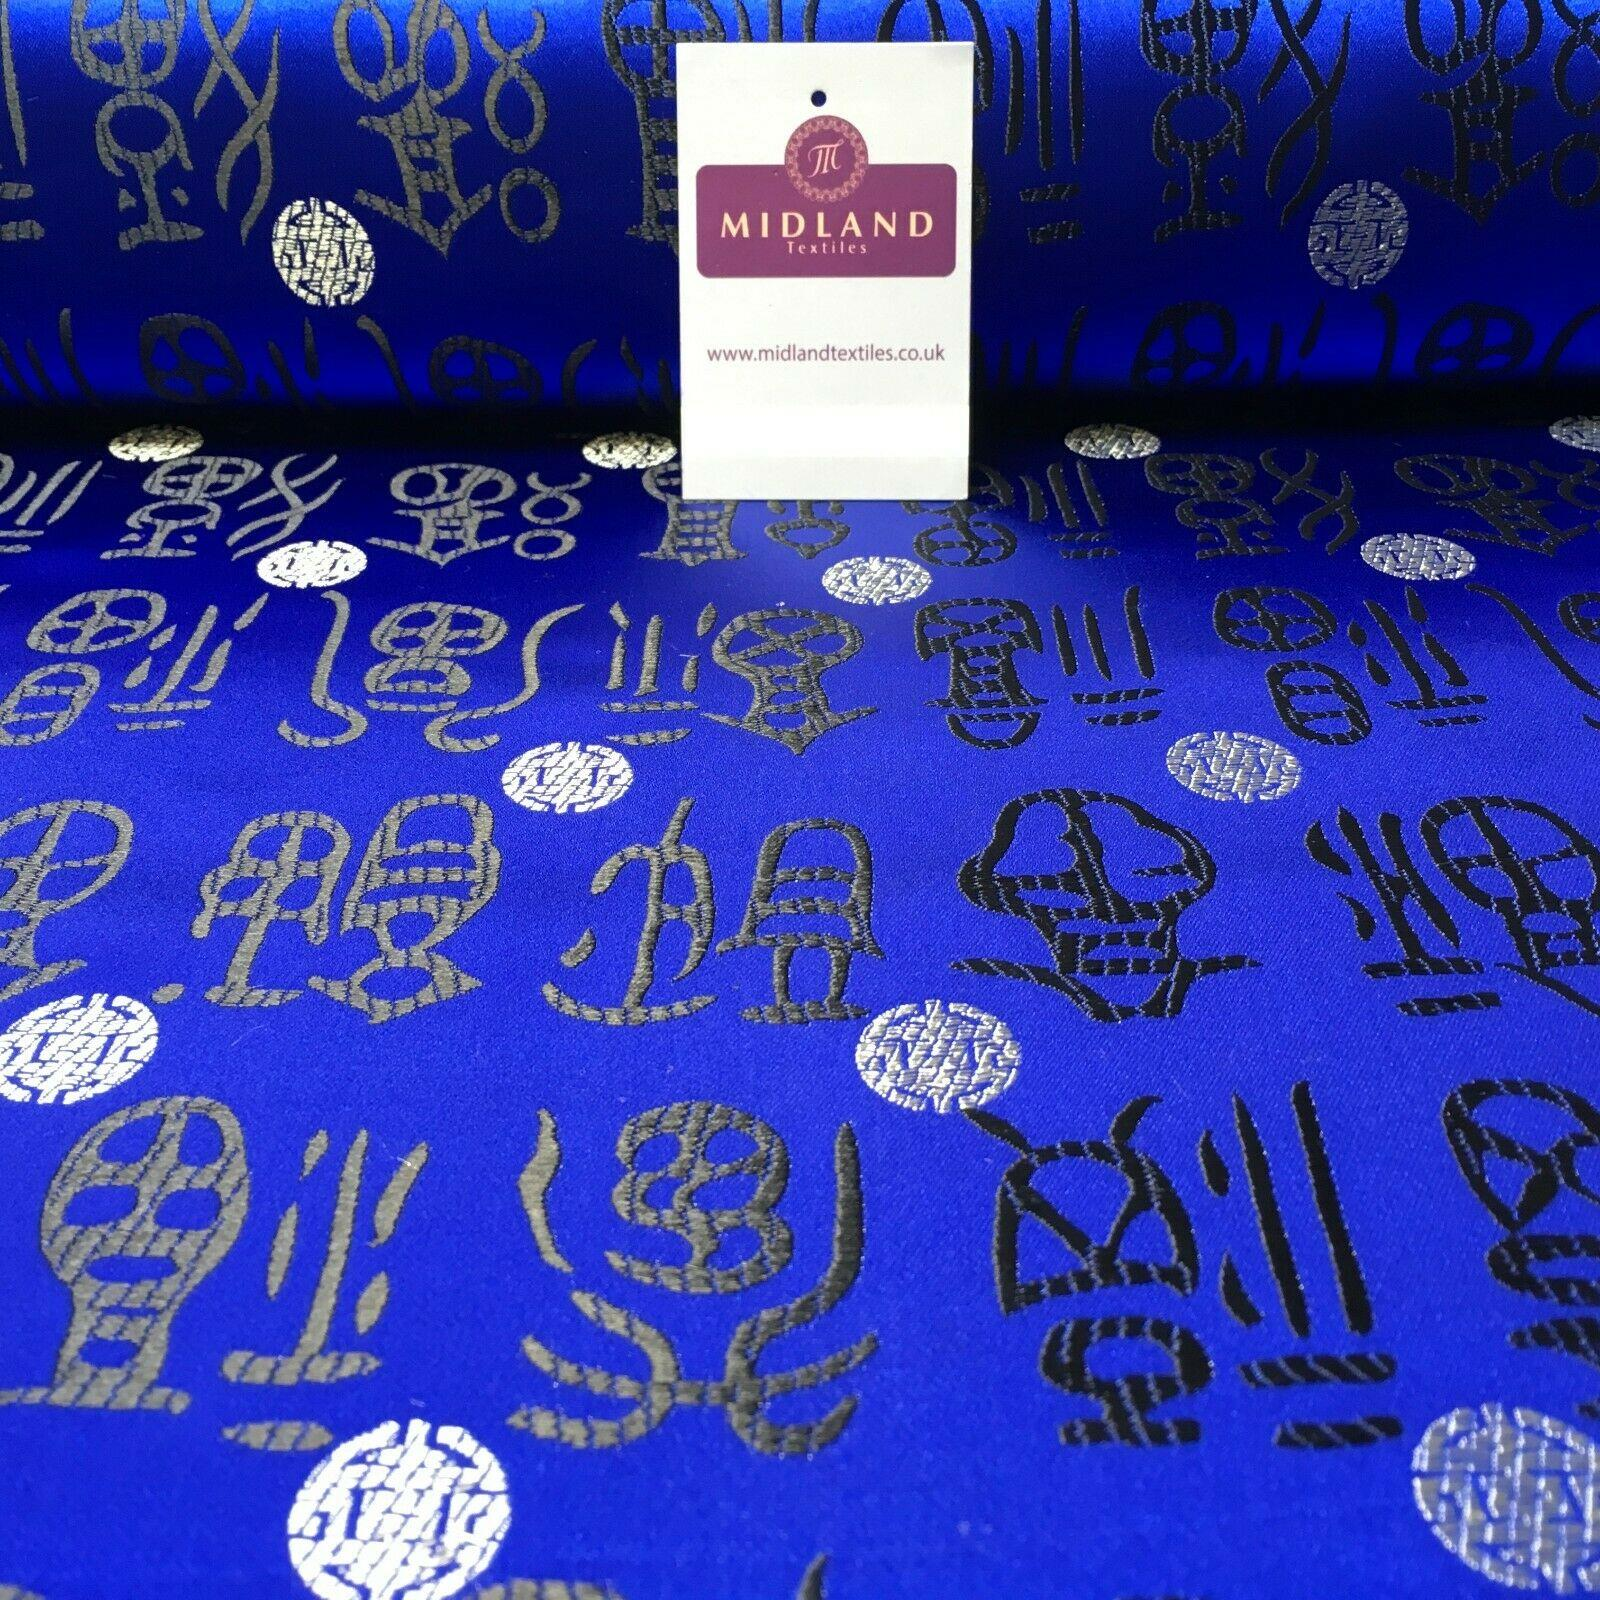 Royal Blue and Black Chinese Words & Medallion Brocade Fabric 110cm Wide M395-25